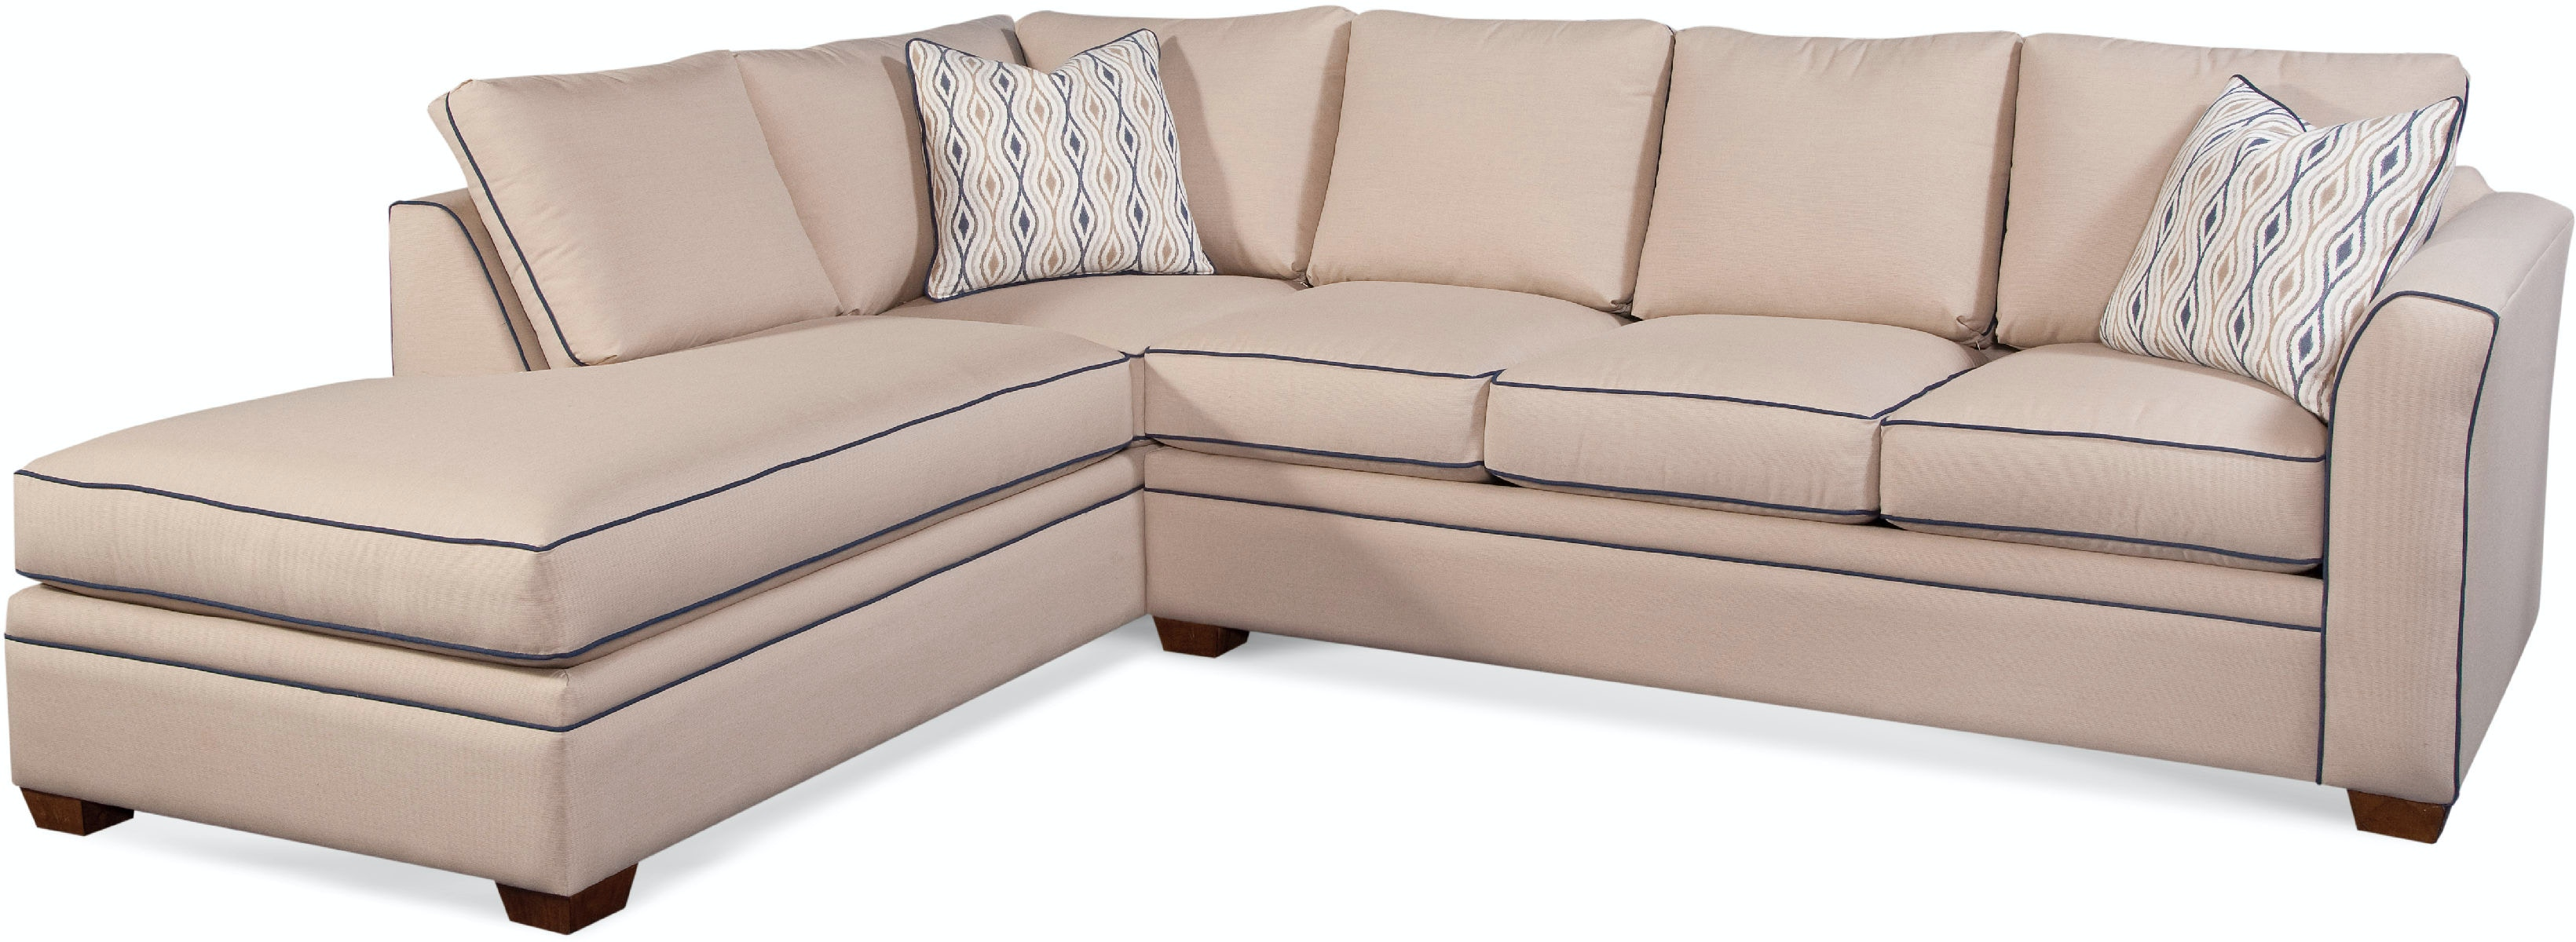 Braxton Culler Living Room 560 BUMPER SECTIONAL Bacons